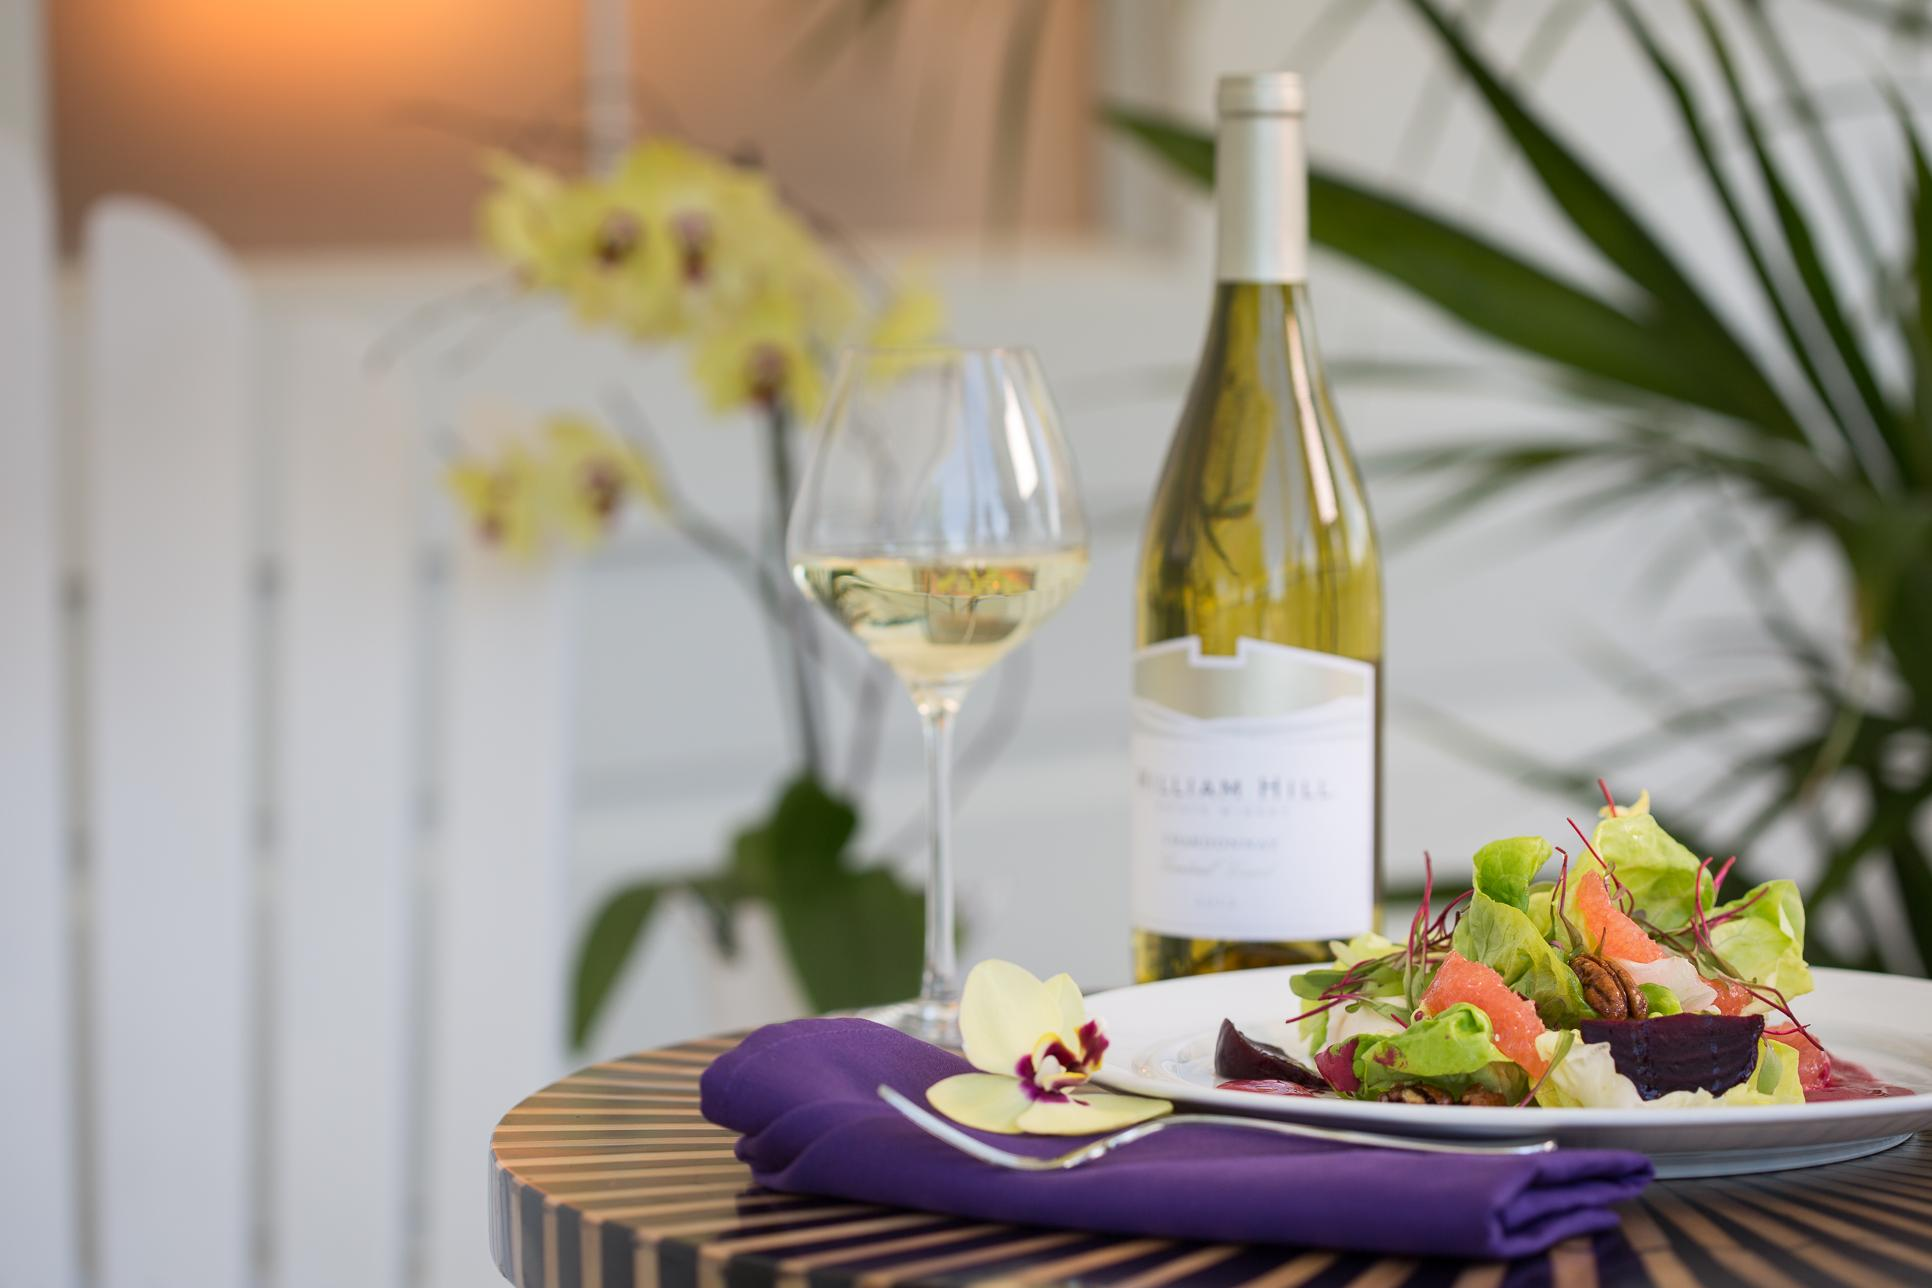 Image of wine and food